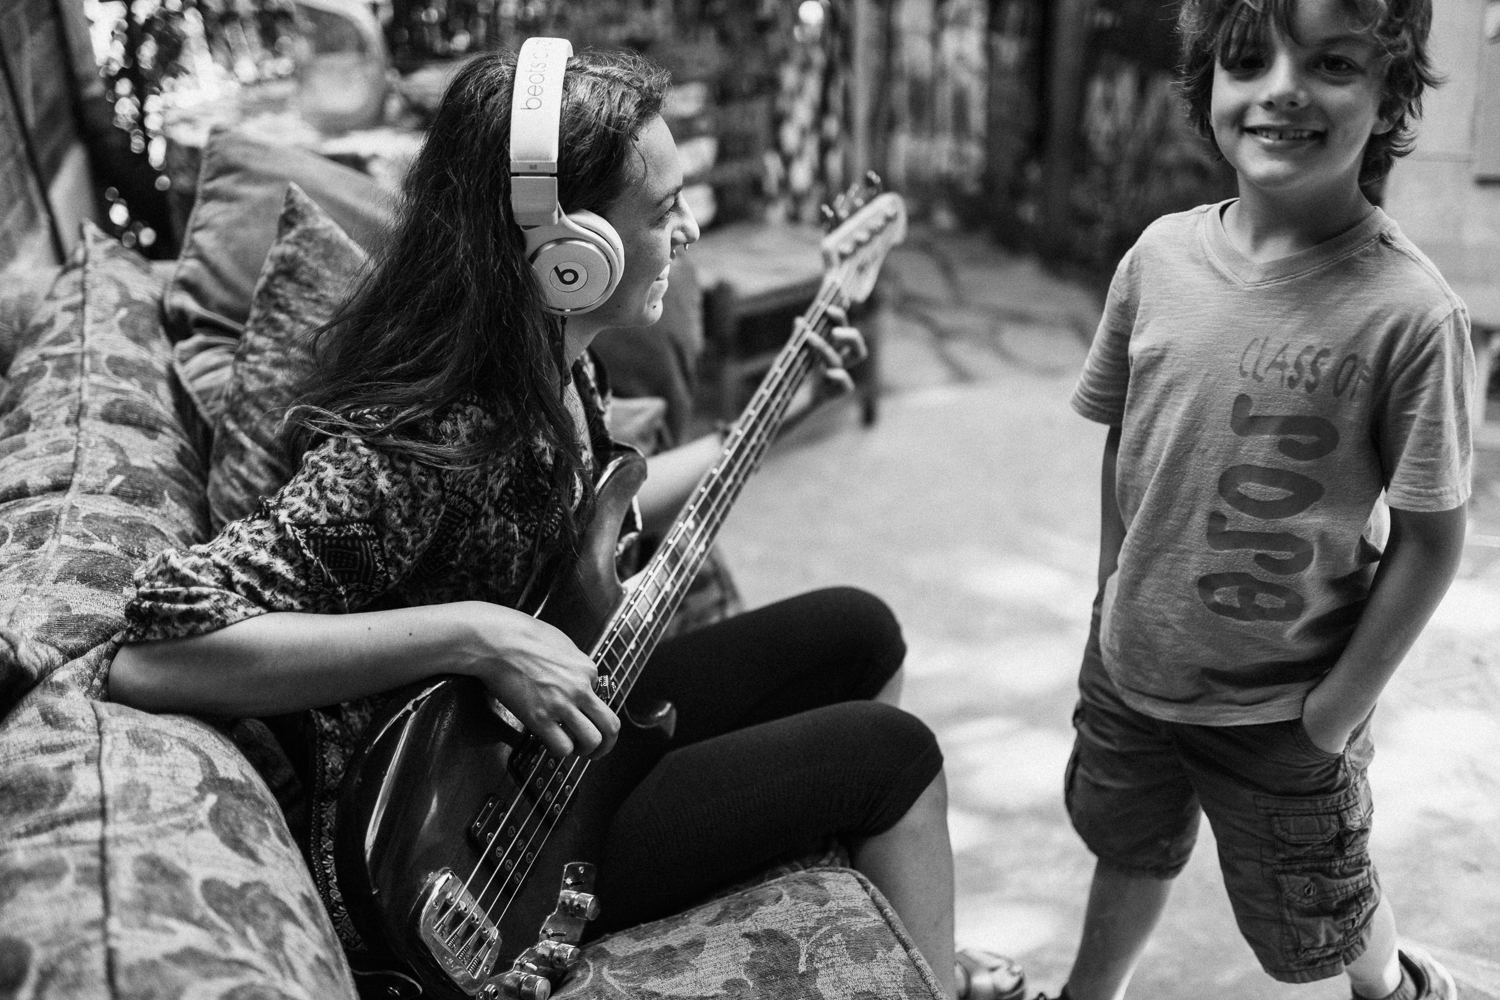 mother-and-son-playing-guitar-in-backyard-in-home-family-session-jen-fairchild-photgraphy-slc-utah